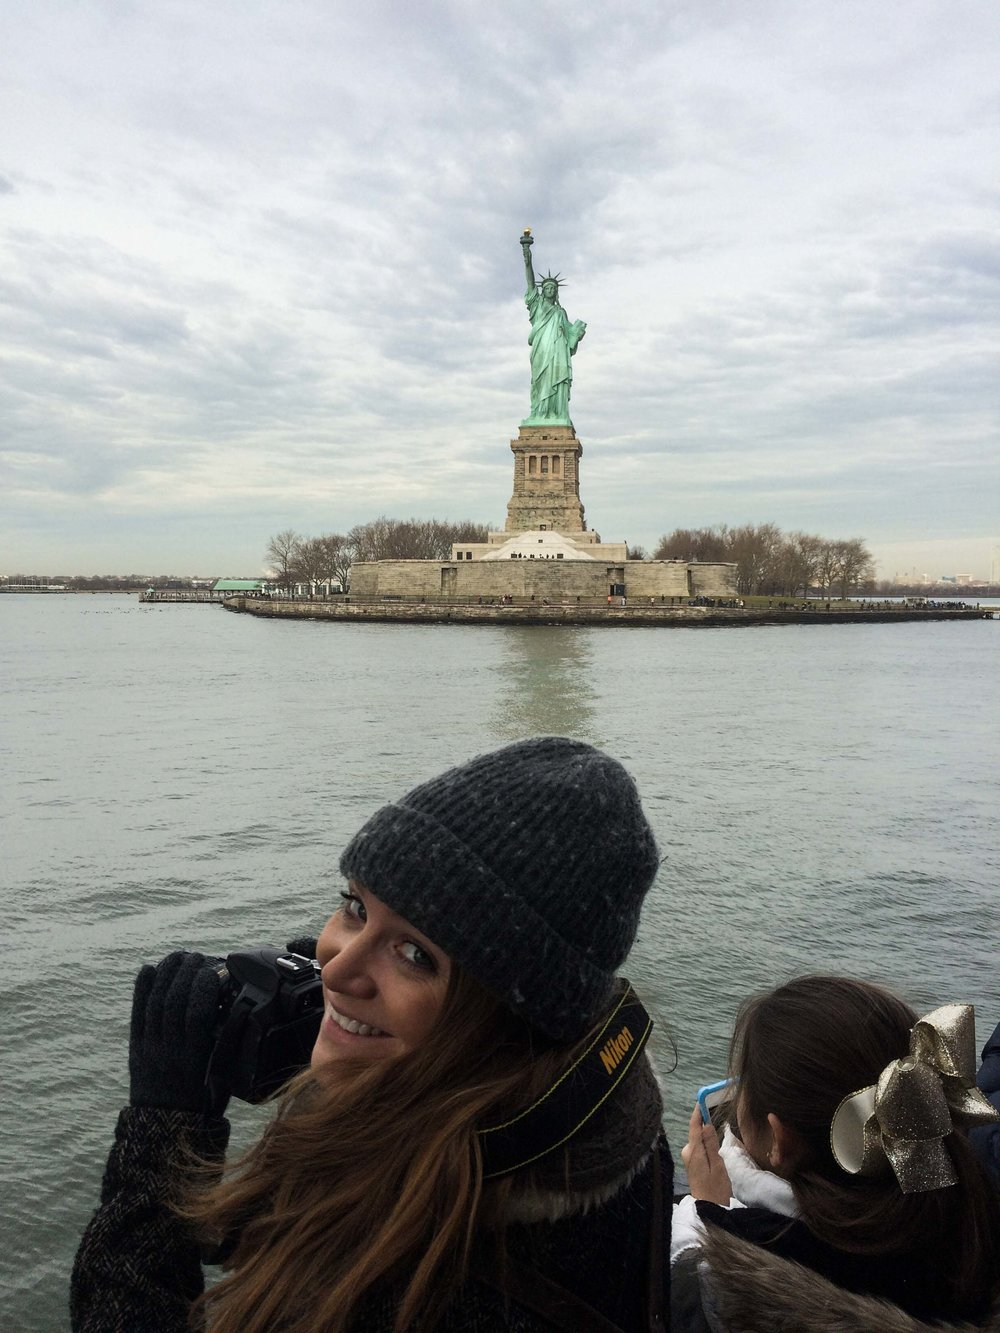 Female photographer in front of the Statue of Liberty.